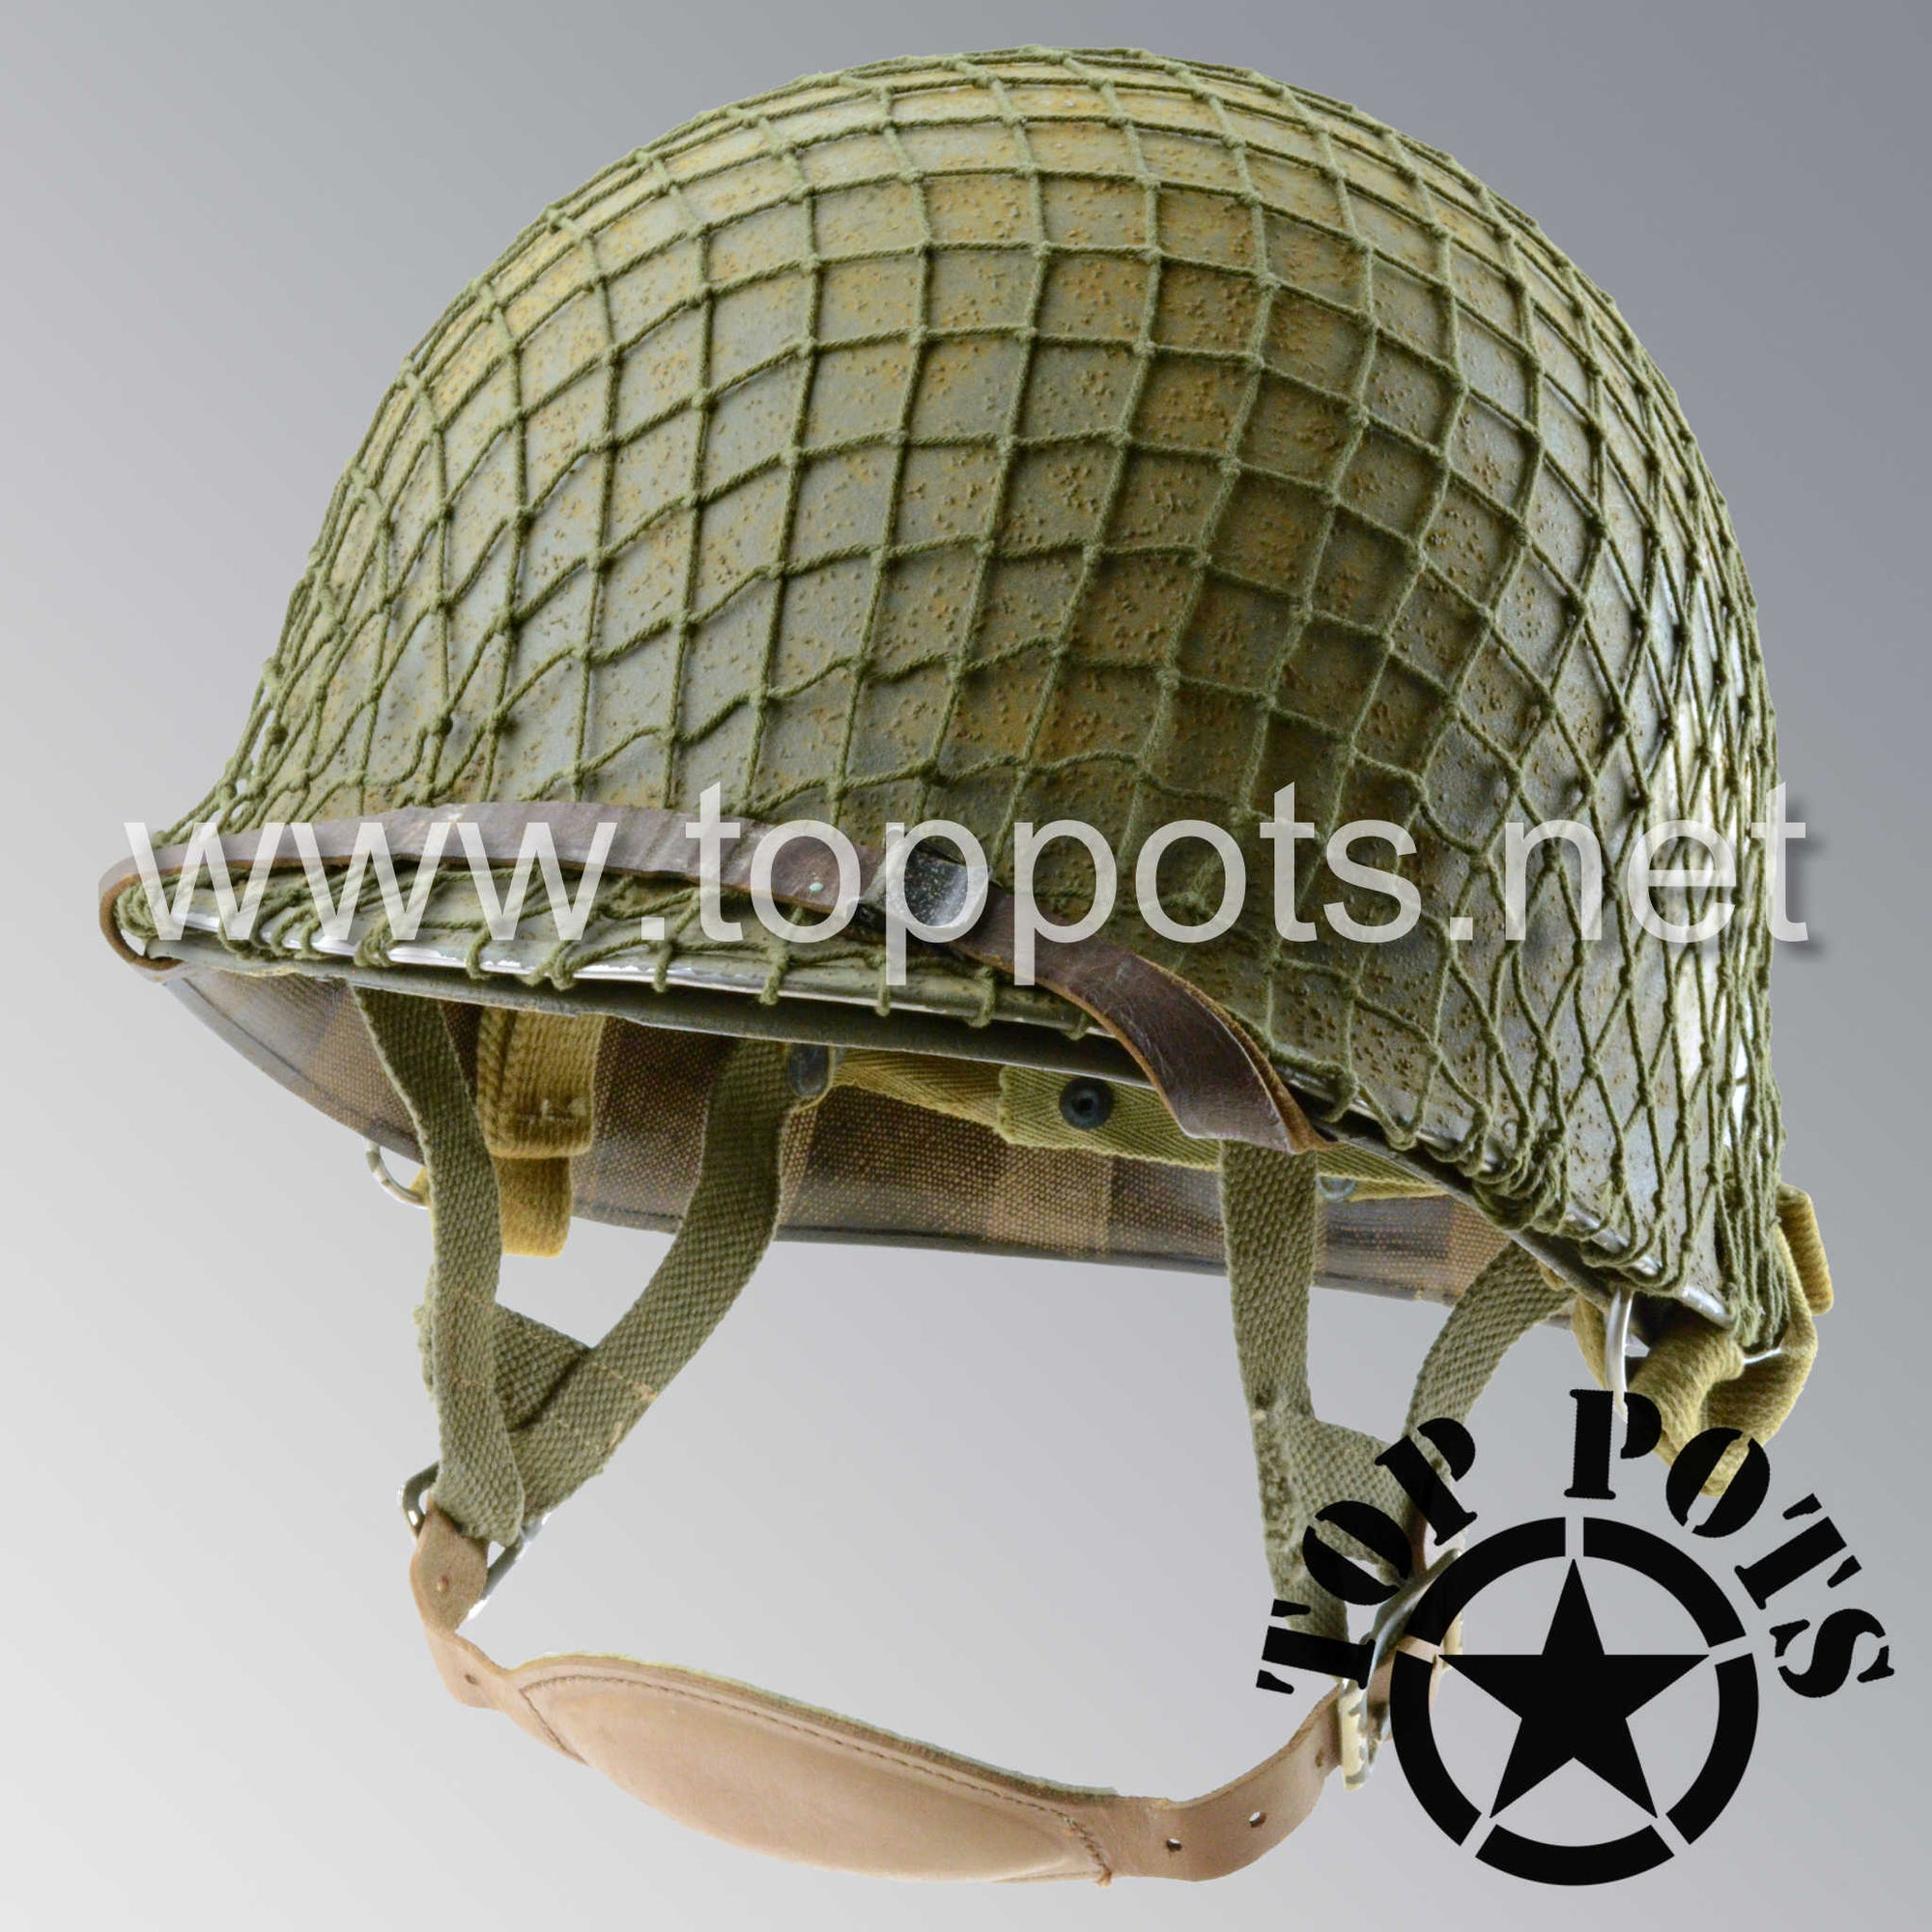 Image 1 of WWII US Army Aged Original M2 Paratrooper Airborne Helmet D Bale Shell and Liner with 502nd PIR Emblem and Net